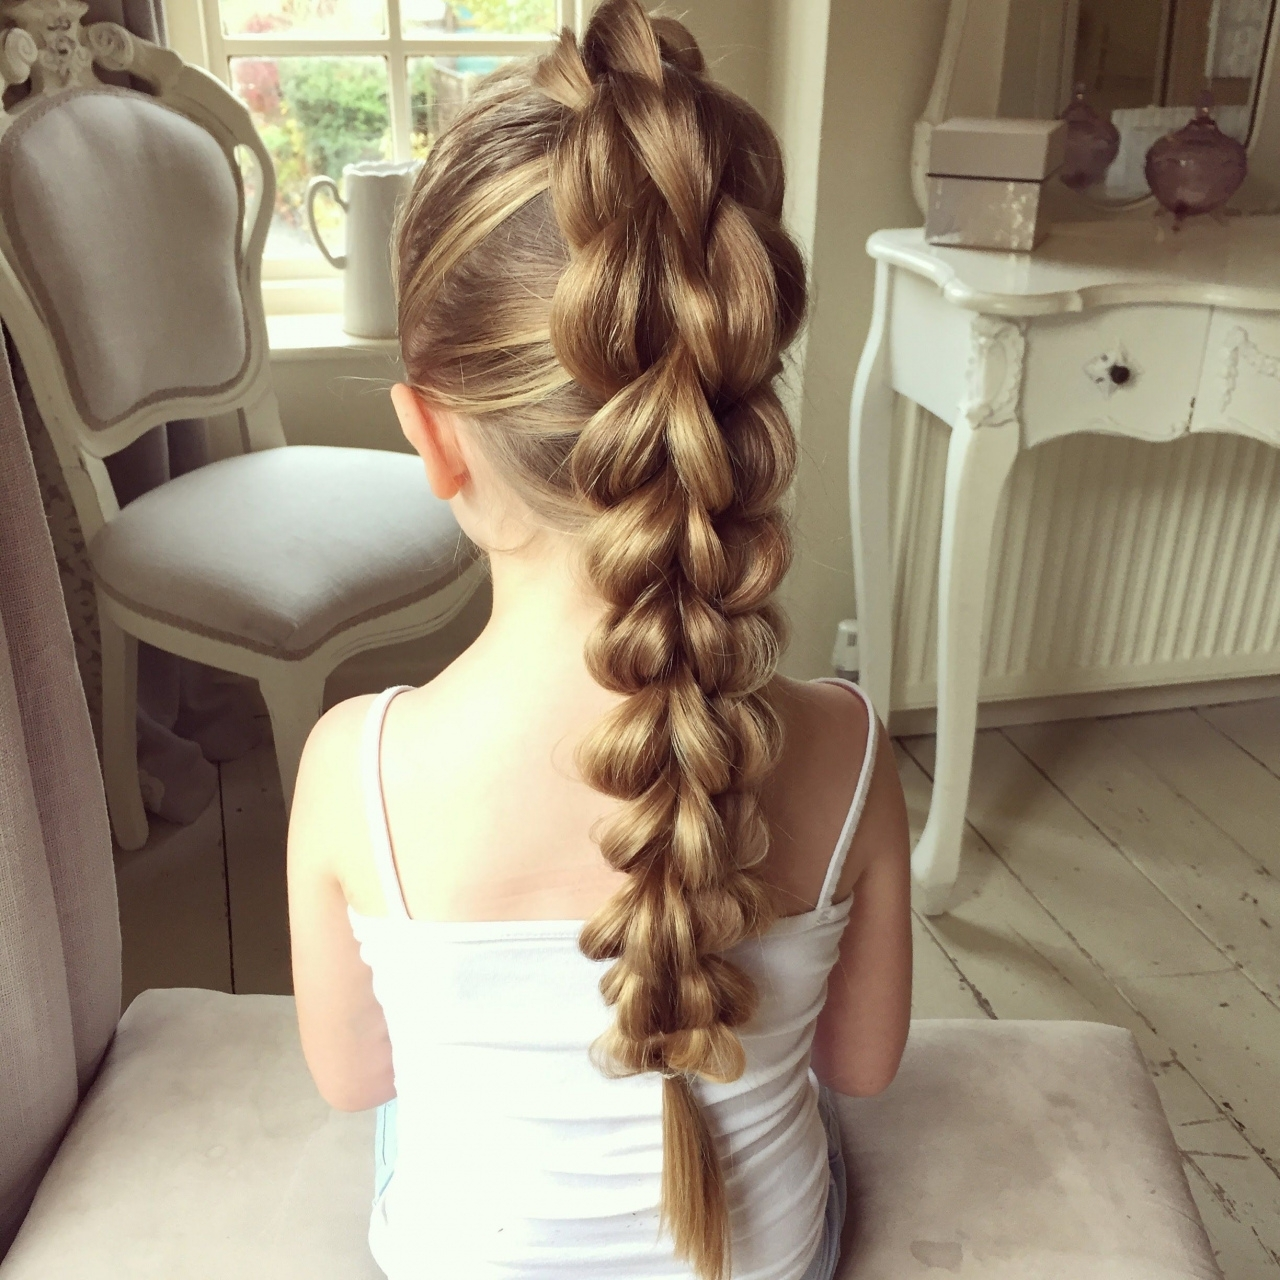 55 Loose Braid Hairstyles Lovely The 3D Pull Through Braid In Newest Loose 3D Dutch Braid Hairstyles (View 2 of 20)